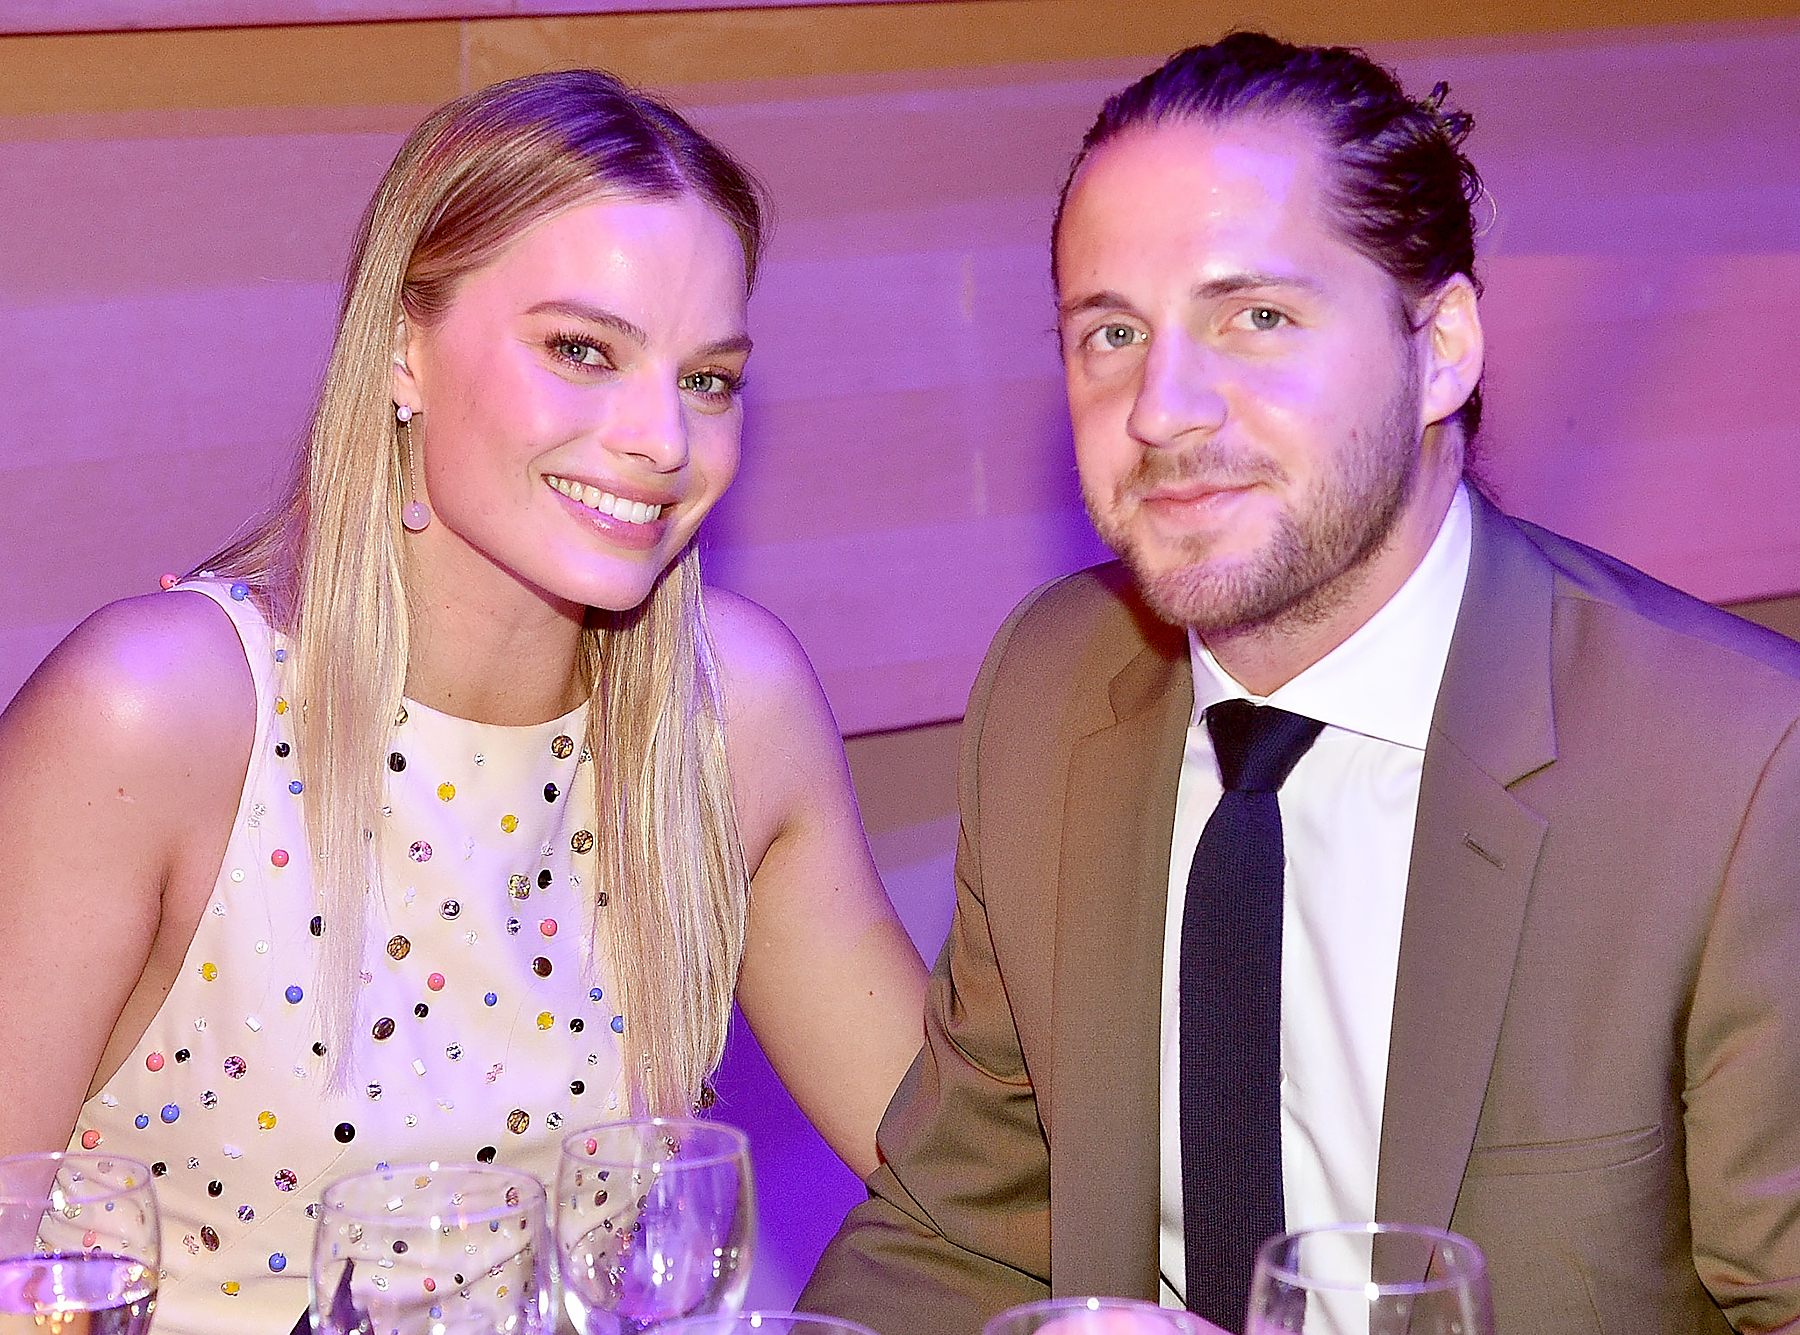 ackerly dating In a november 2017 interview with vogue australia, robbie noted that married  life with ackerley is not much different than when they dated.